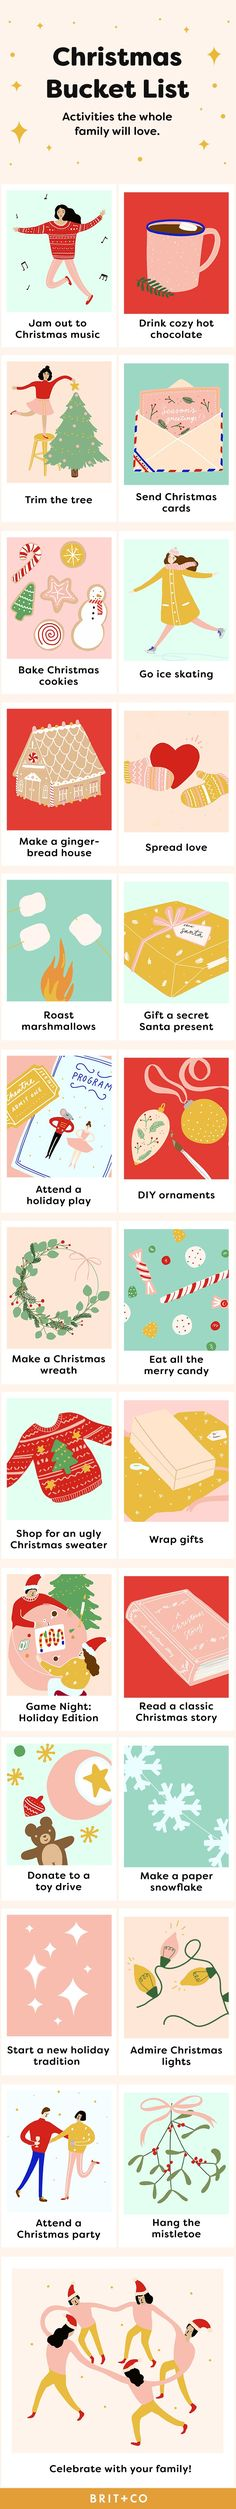 Save this holiday infographic for the ultimate Christmas bucket list full of activities the whole family will love like jamming out to Christmas music, drinking hot chocolate, trimming the tree, sending Christmas cards, baking Christmas cookies, ice skating, making a gingerbread house, roasting marshmallows, gifting a secret Santa present, attending a holiday party, wearing an ugly Christmas sweater, reading a classic Christmas story, making paper snowflakes, and hanging mistletoe.